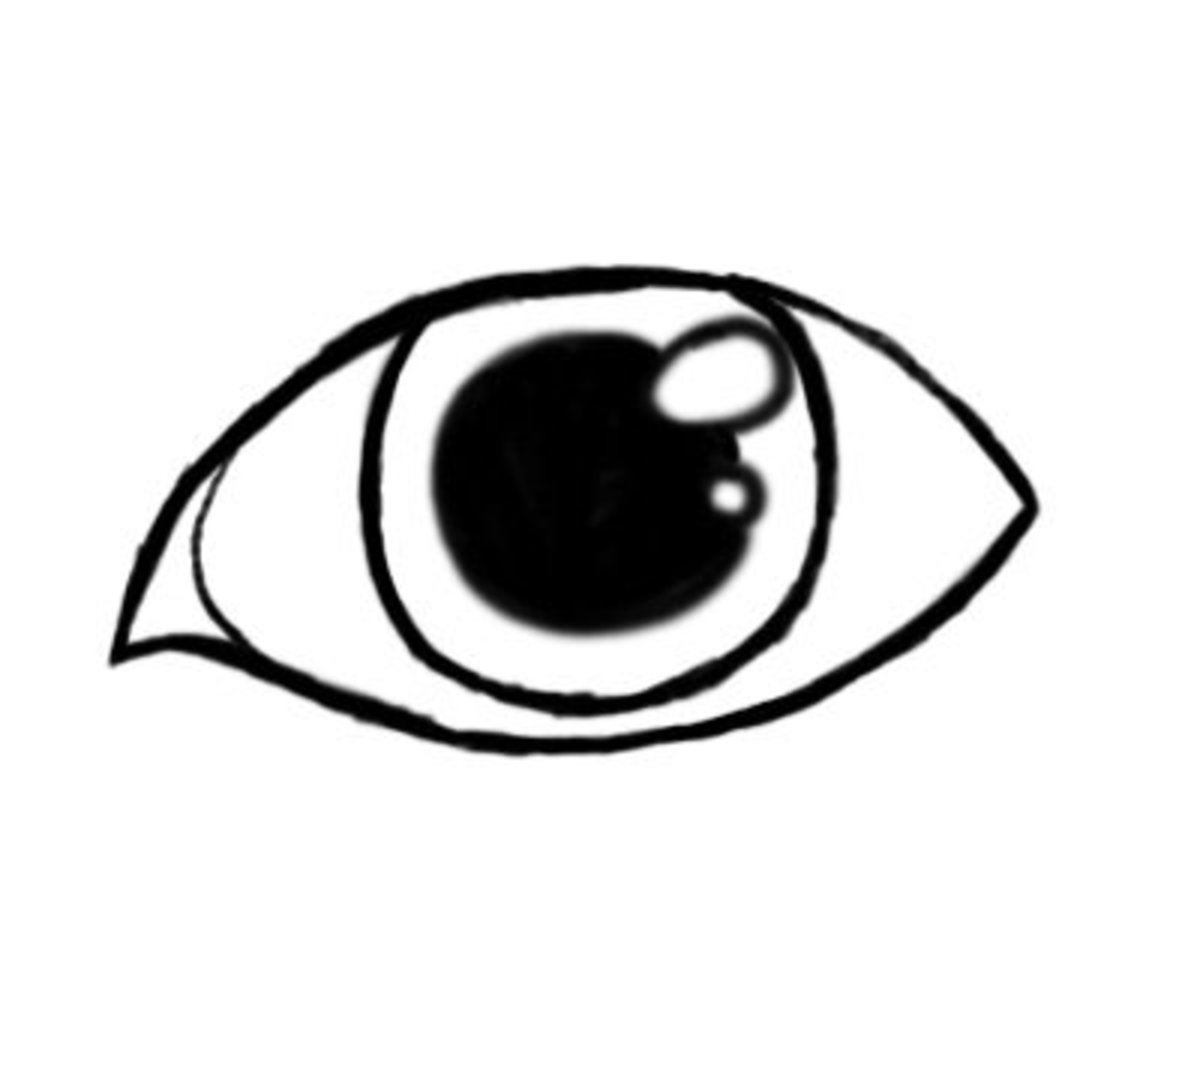 Start adding little details like the pupil (black in the center) and the glare on the eye.